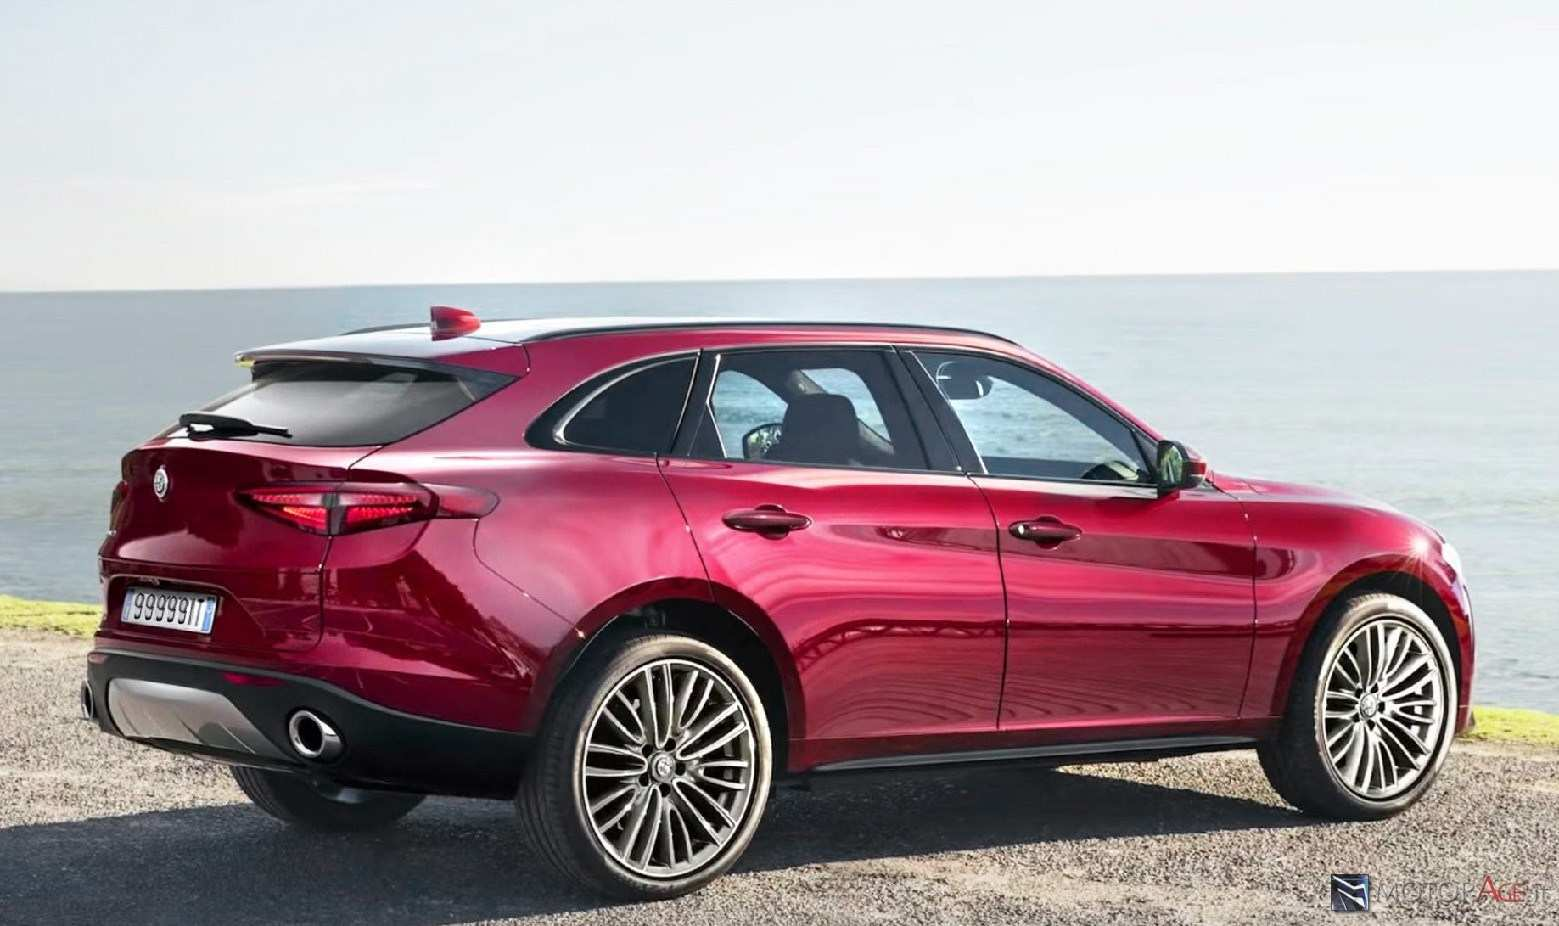 47 All New 2020 Alfa Romeo Castello Wallpaper